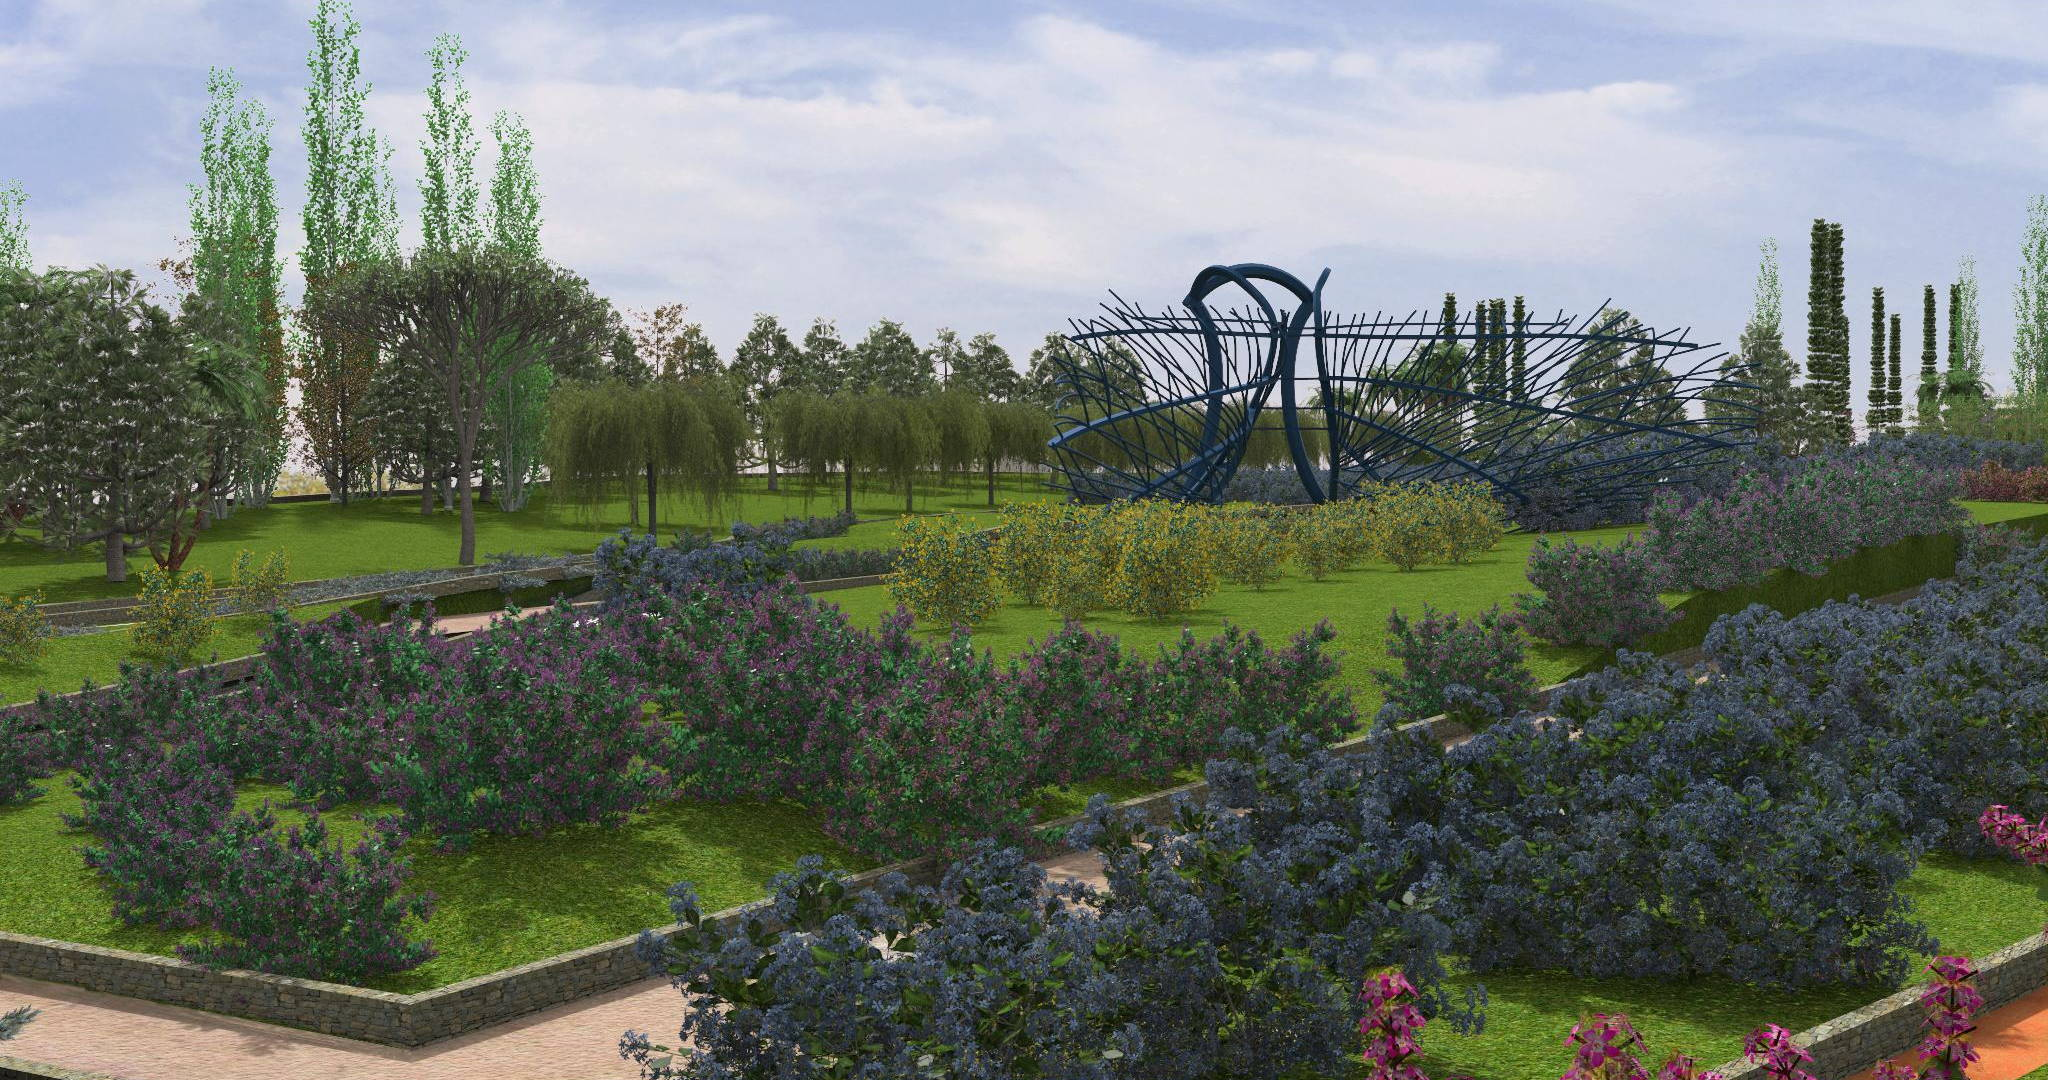 Lands Design project of a park with pathways, green areas and a big blue art structure.